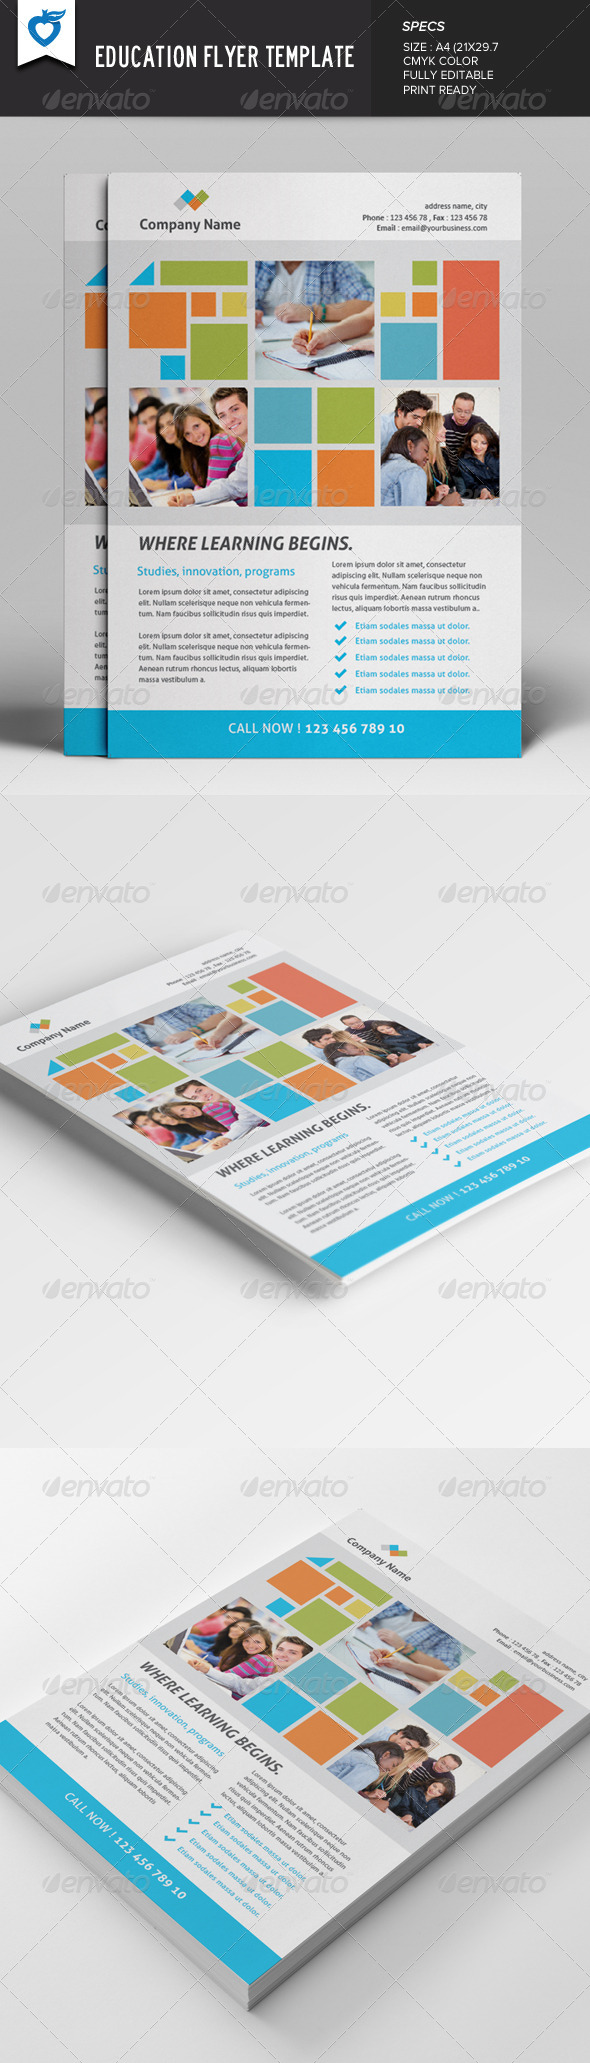 GraphicRiver Education Flyer Template 7849190